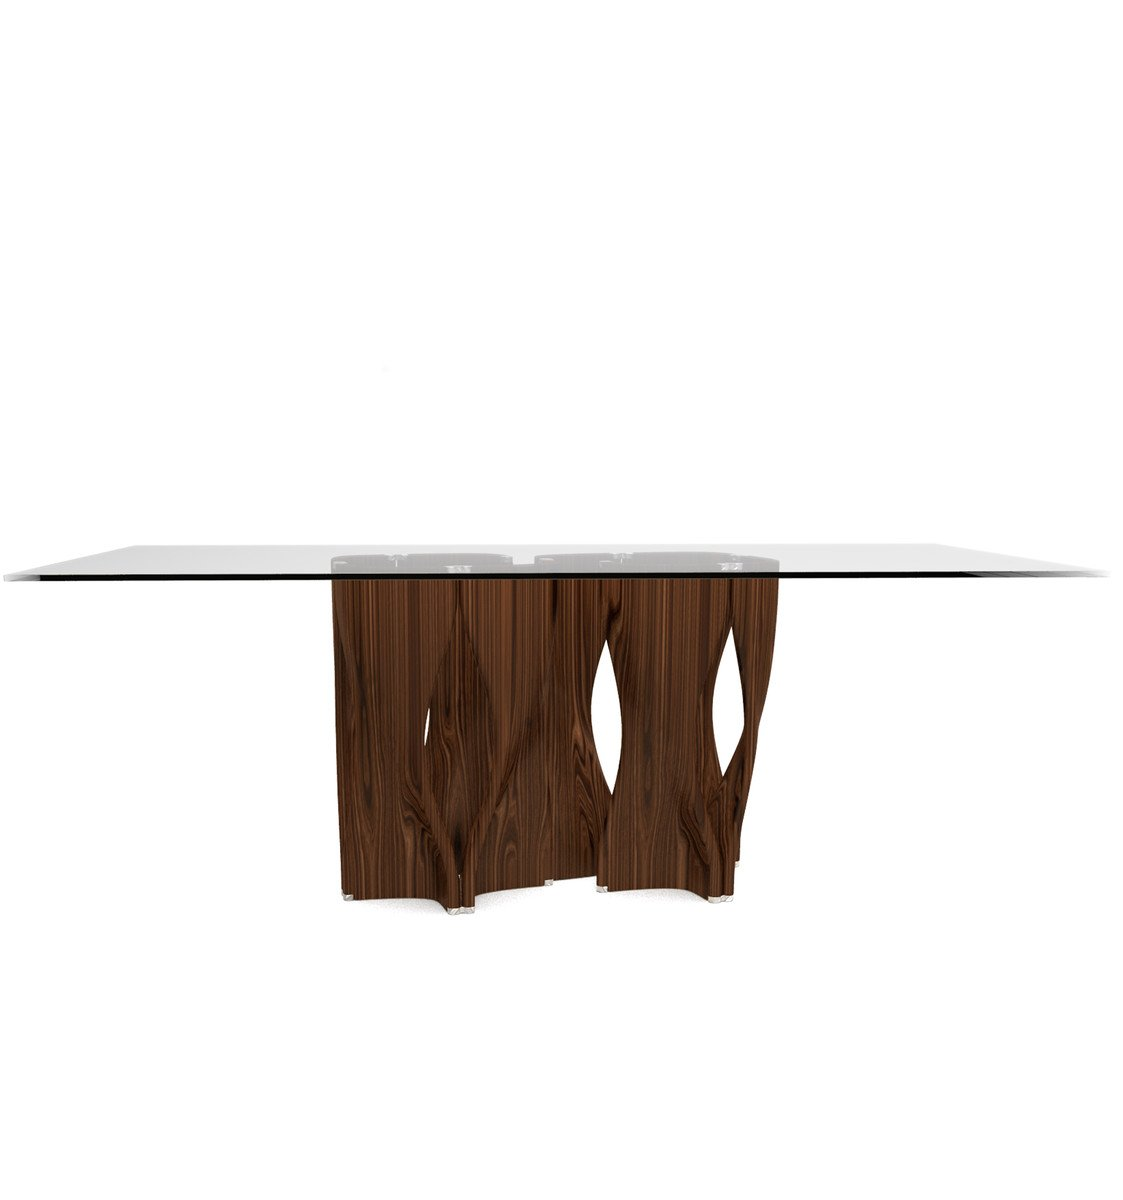 Mac's Table dining from Tonon, designed by Mac Stopa